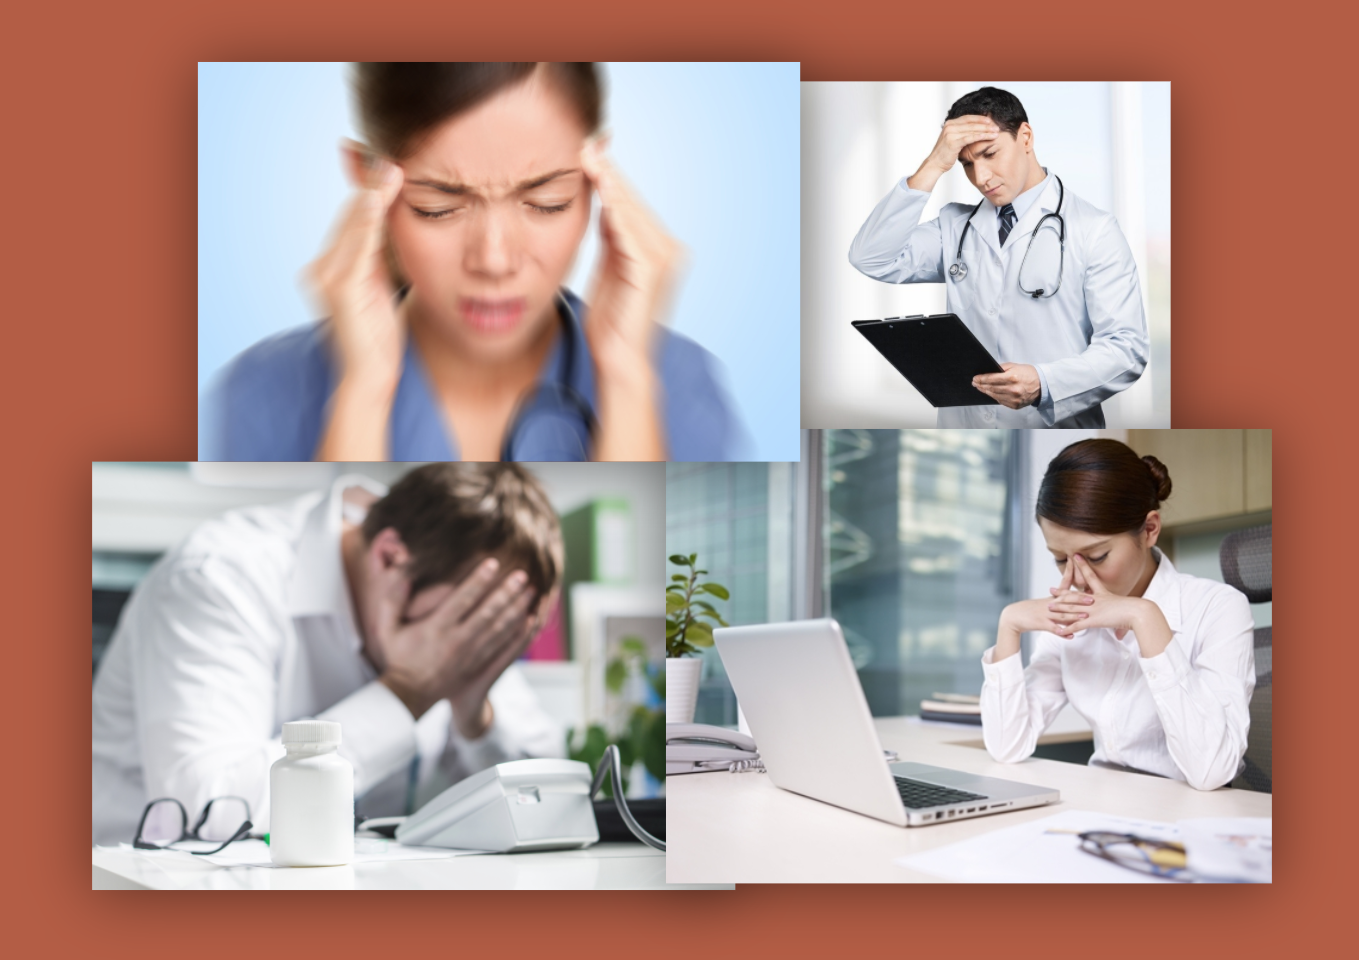 TIRED, FRUSTRATED CLINICIANS